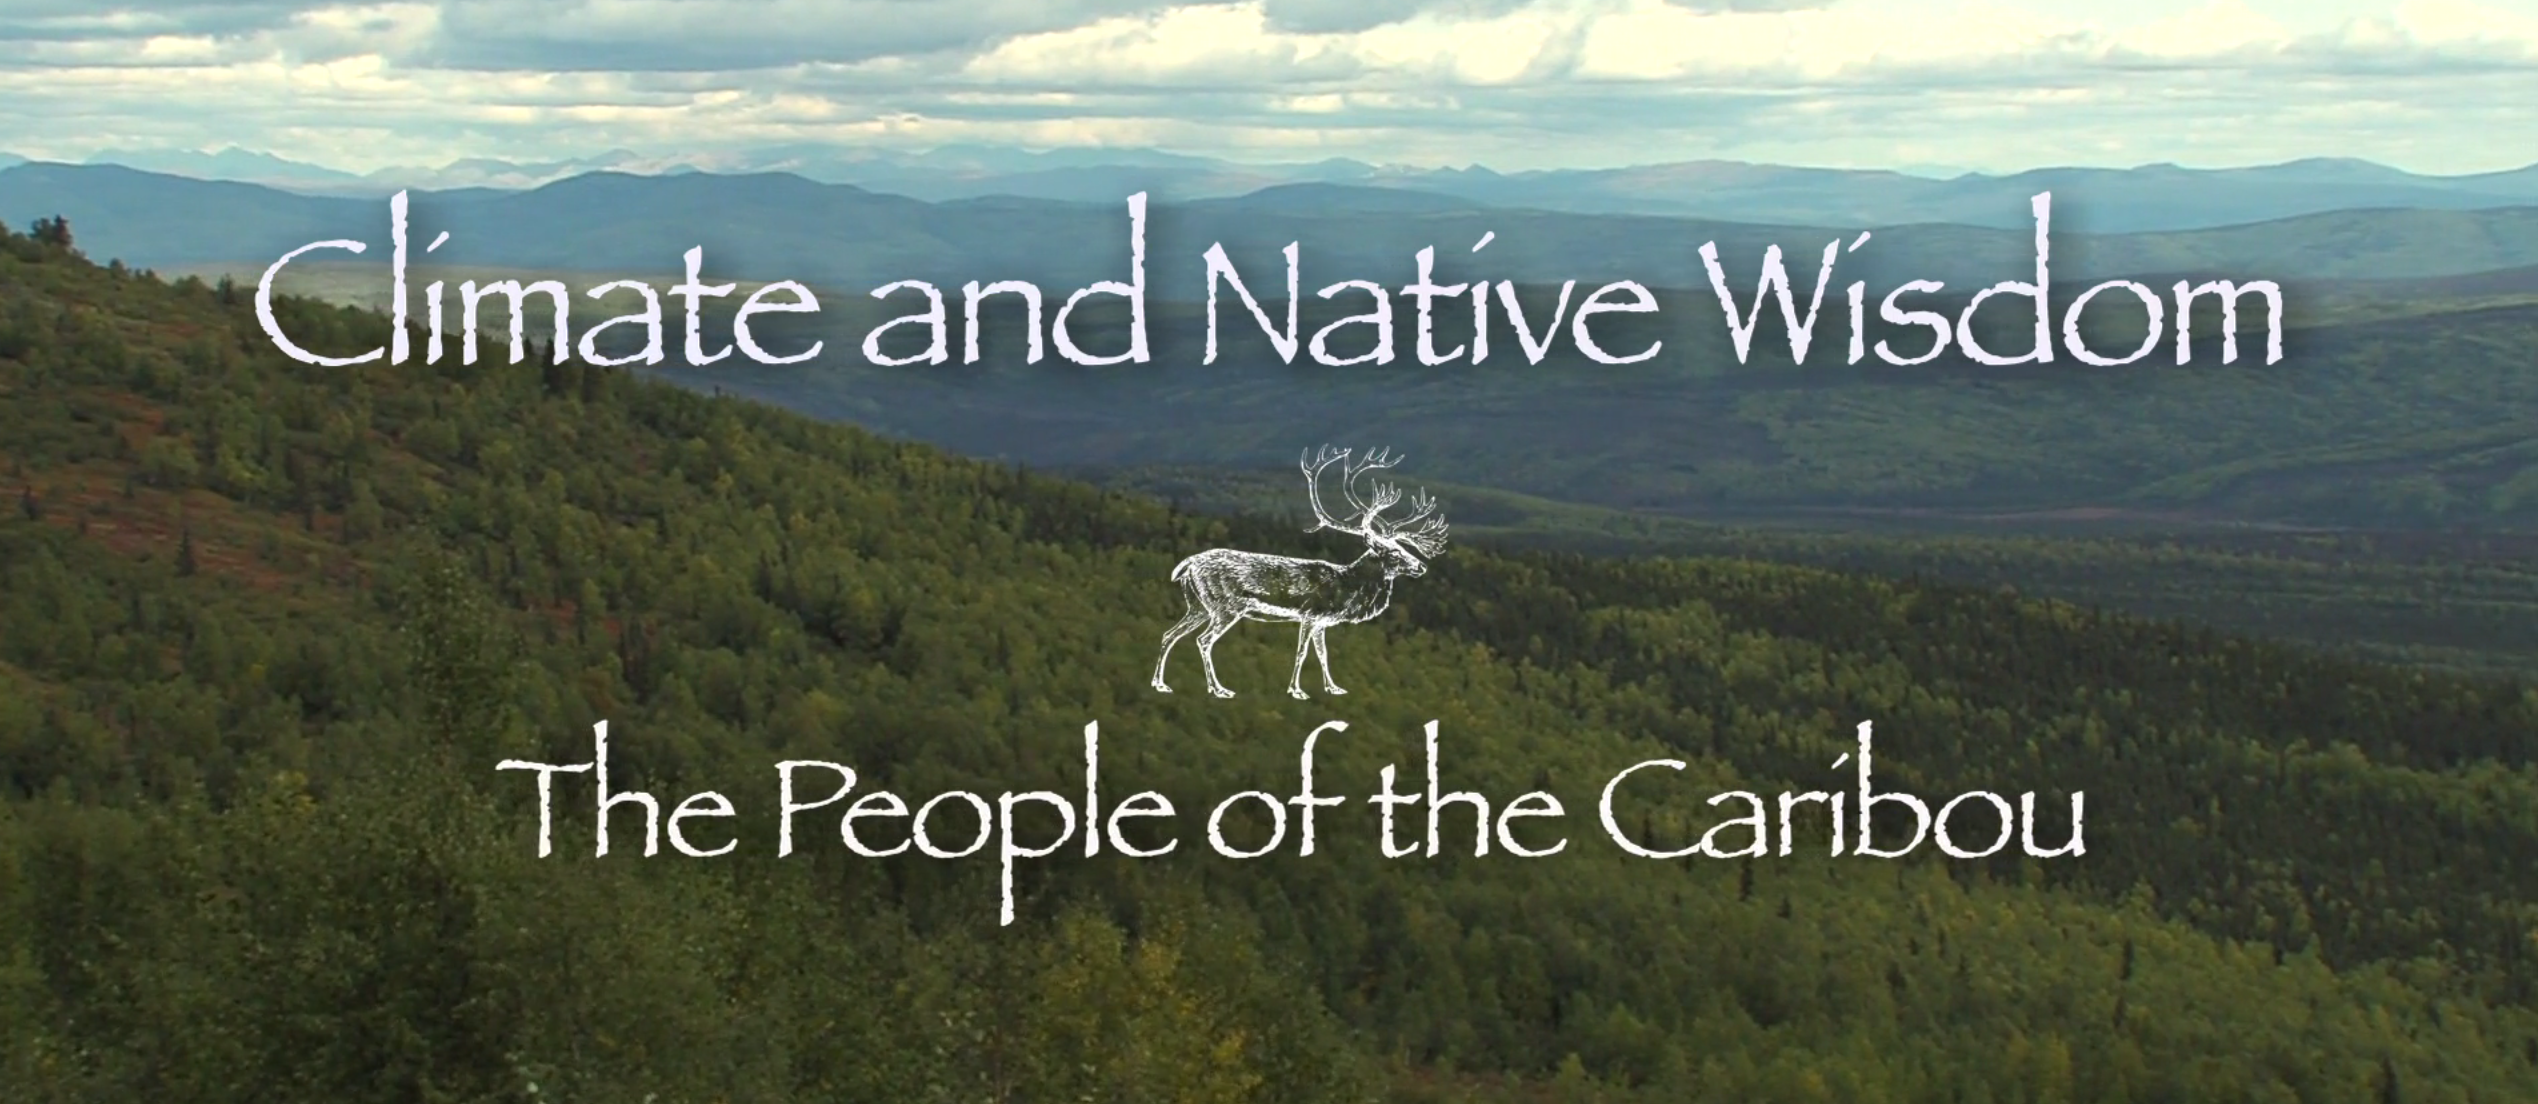 The Cutting Edge: Climate and the People of the Caribou